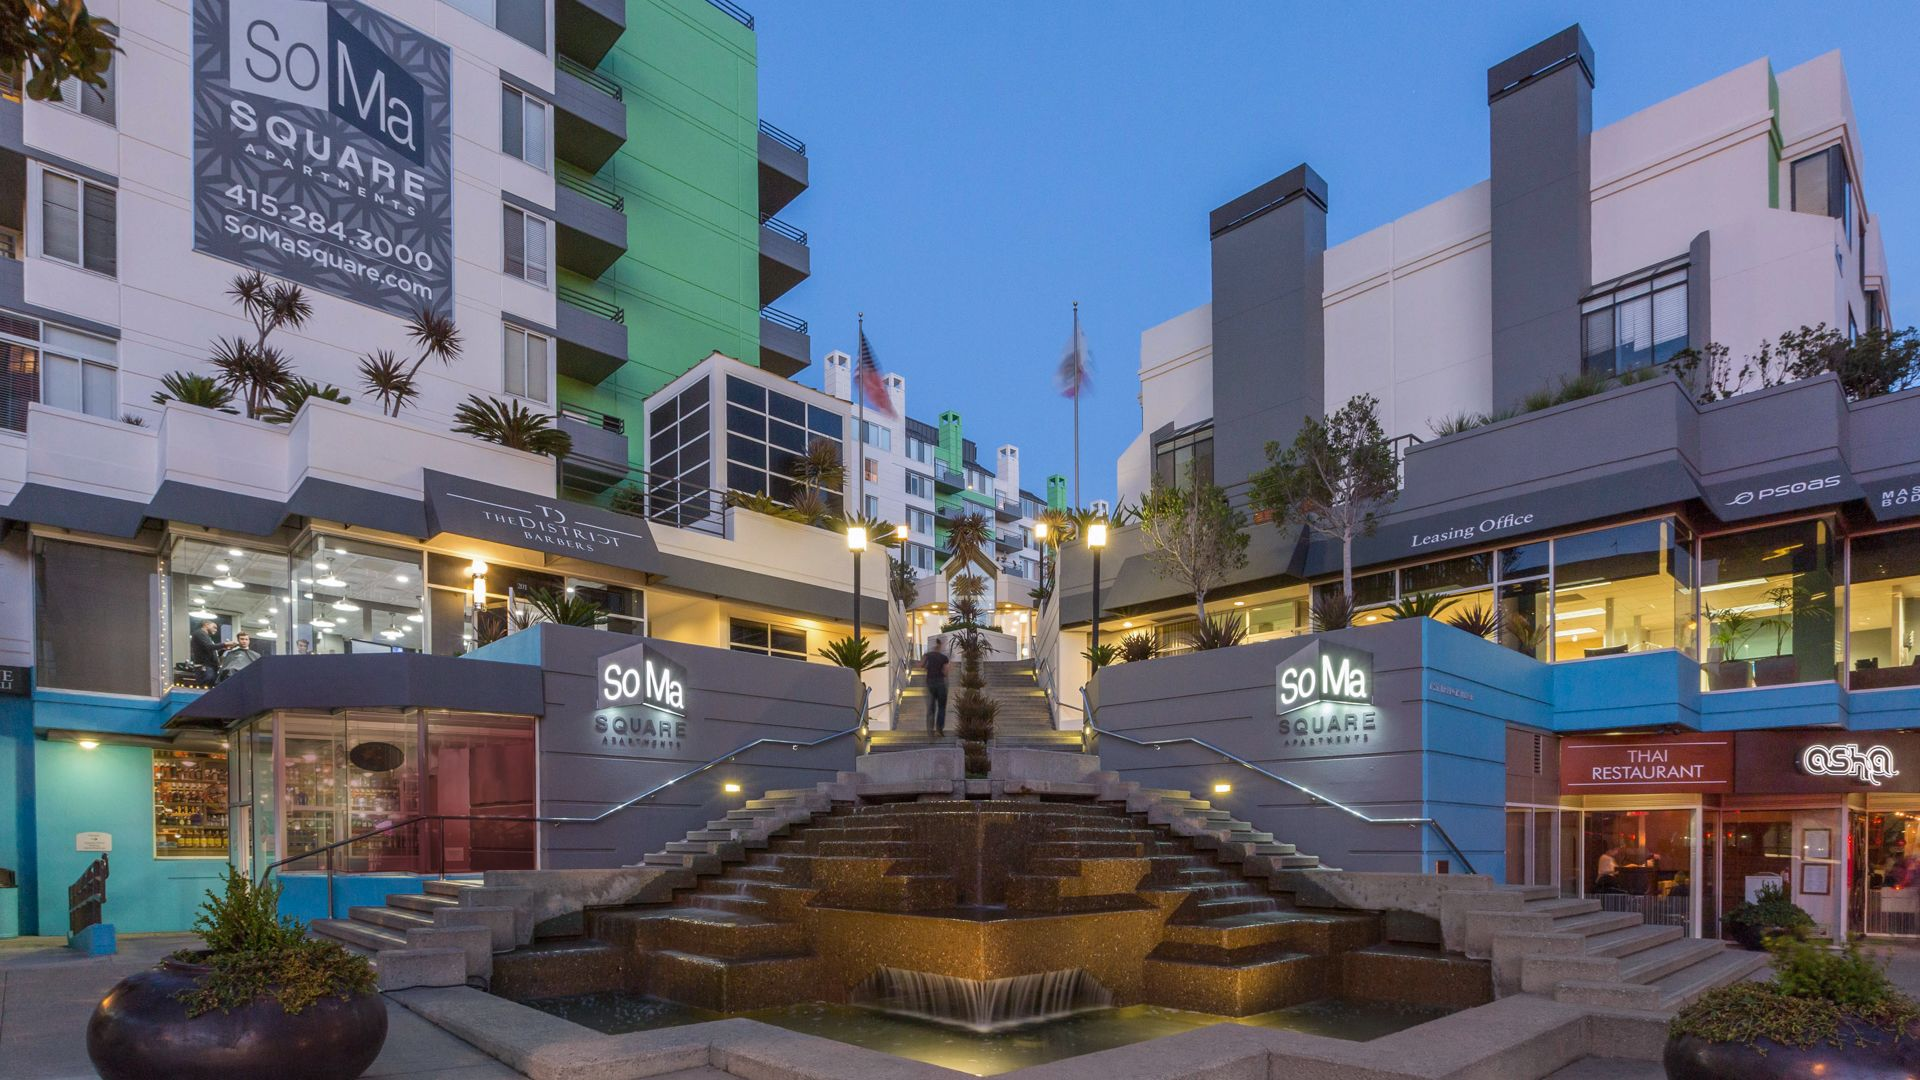 SoMa Square Apartments in San Francisco - SoMa - 1 Saint ...